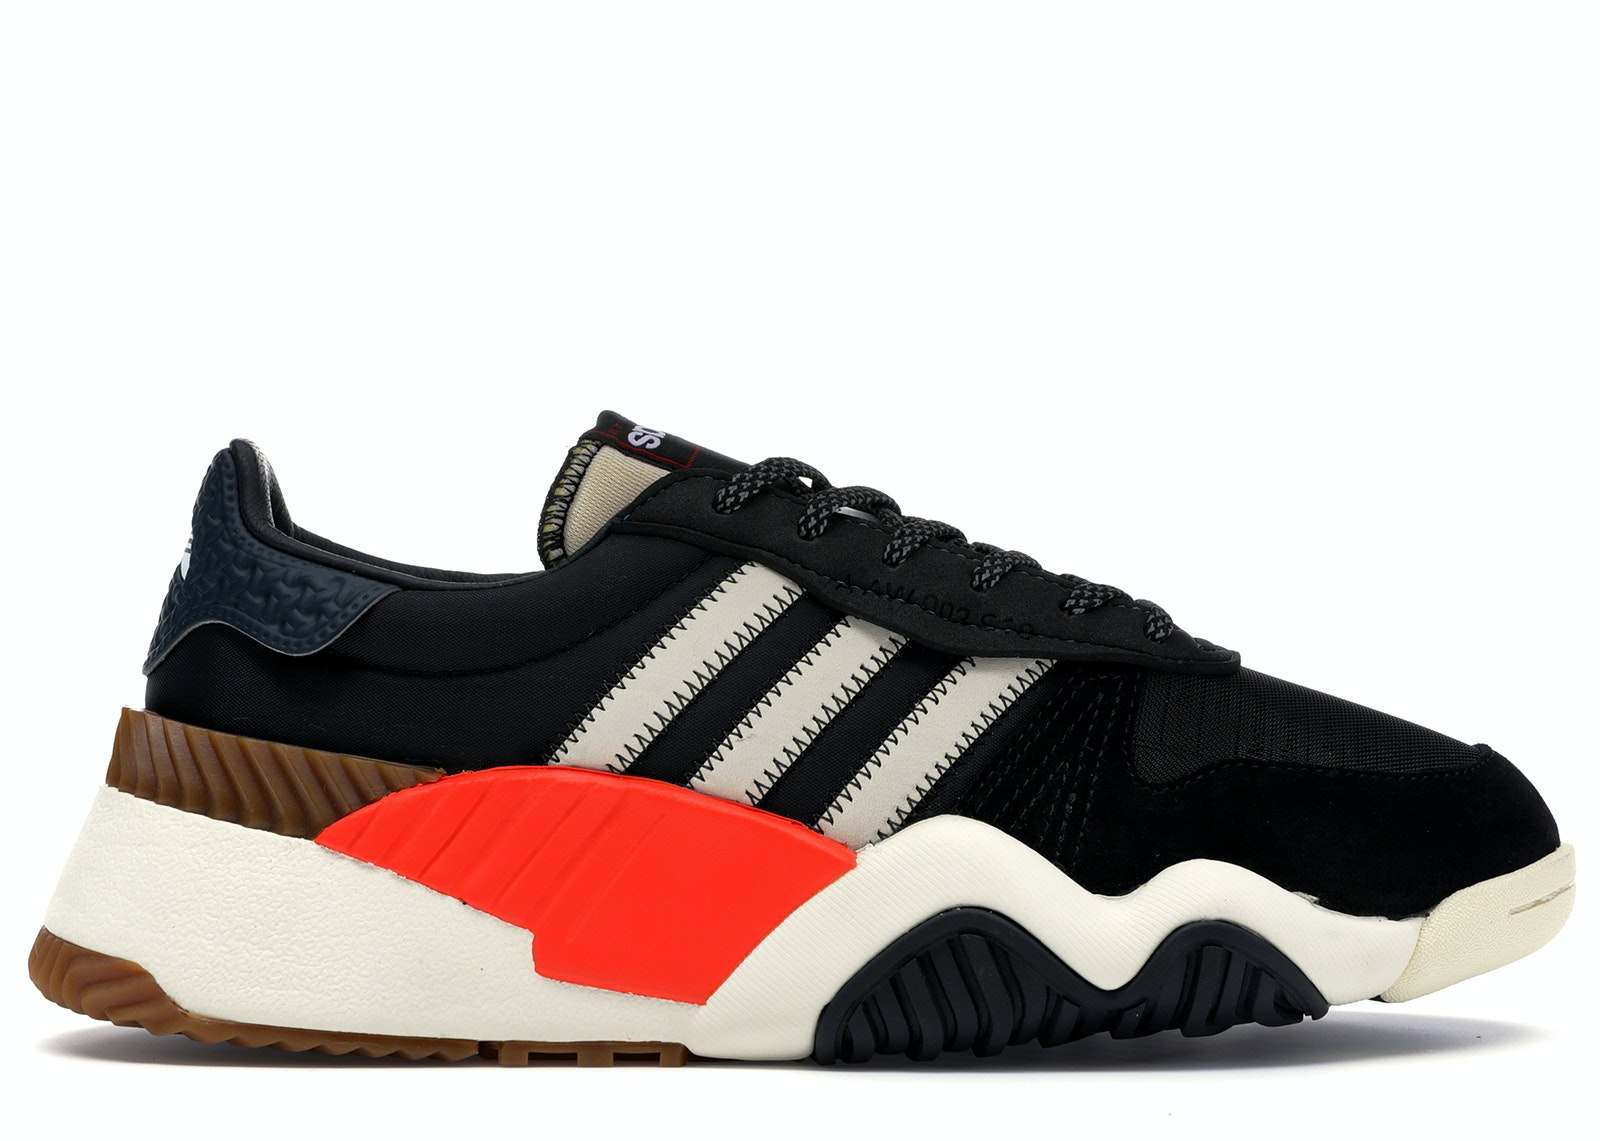 adidas Turnout Trainer Alexander Wang Core Black